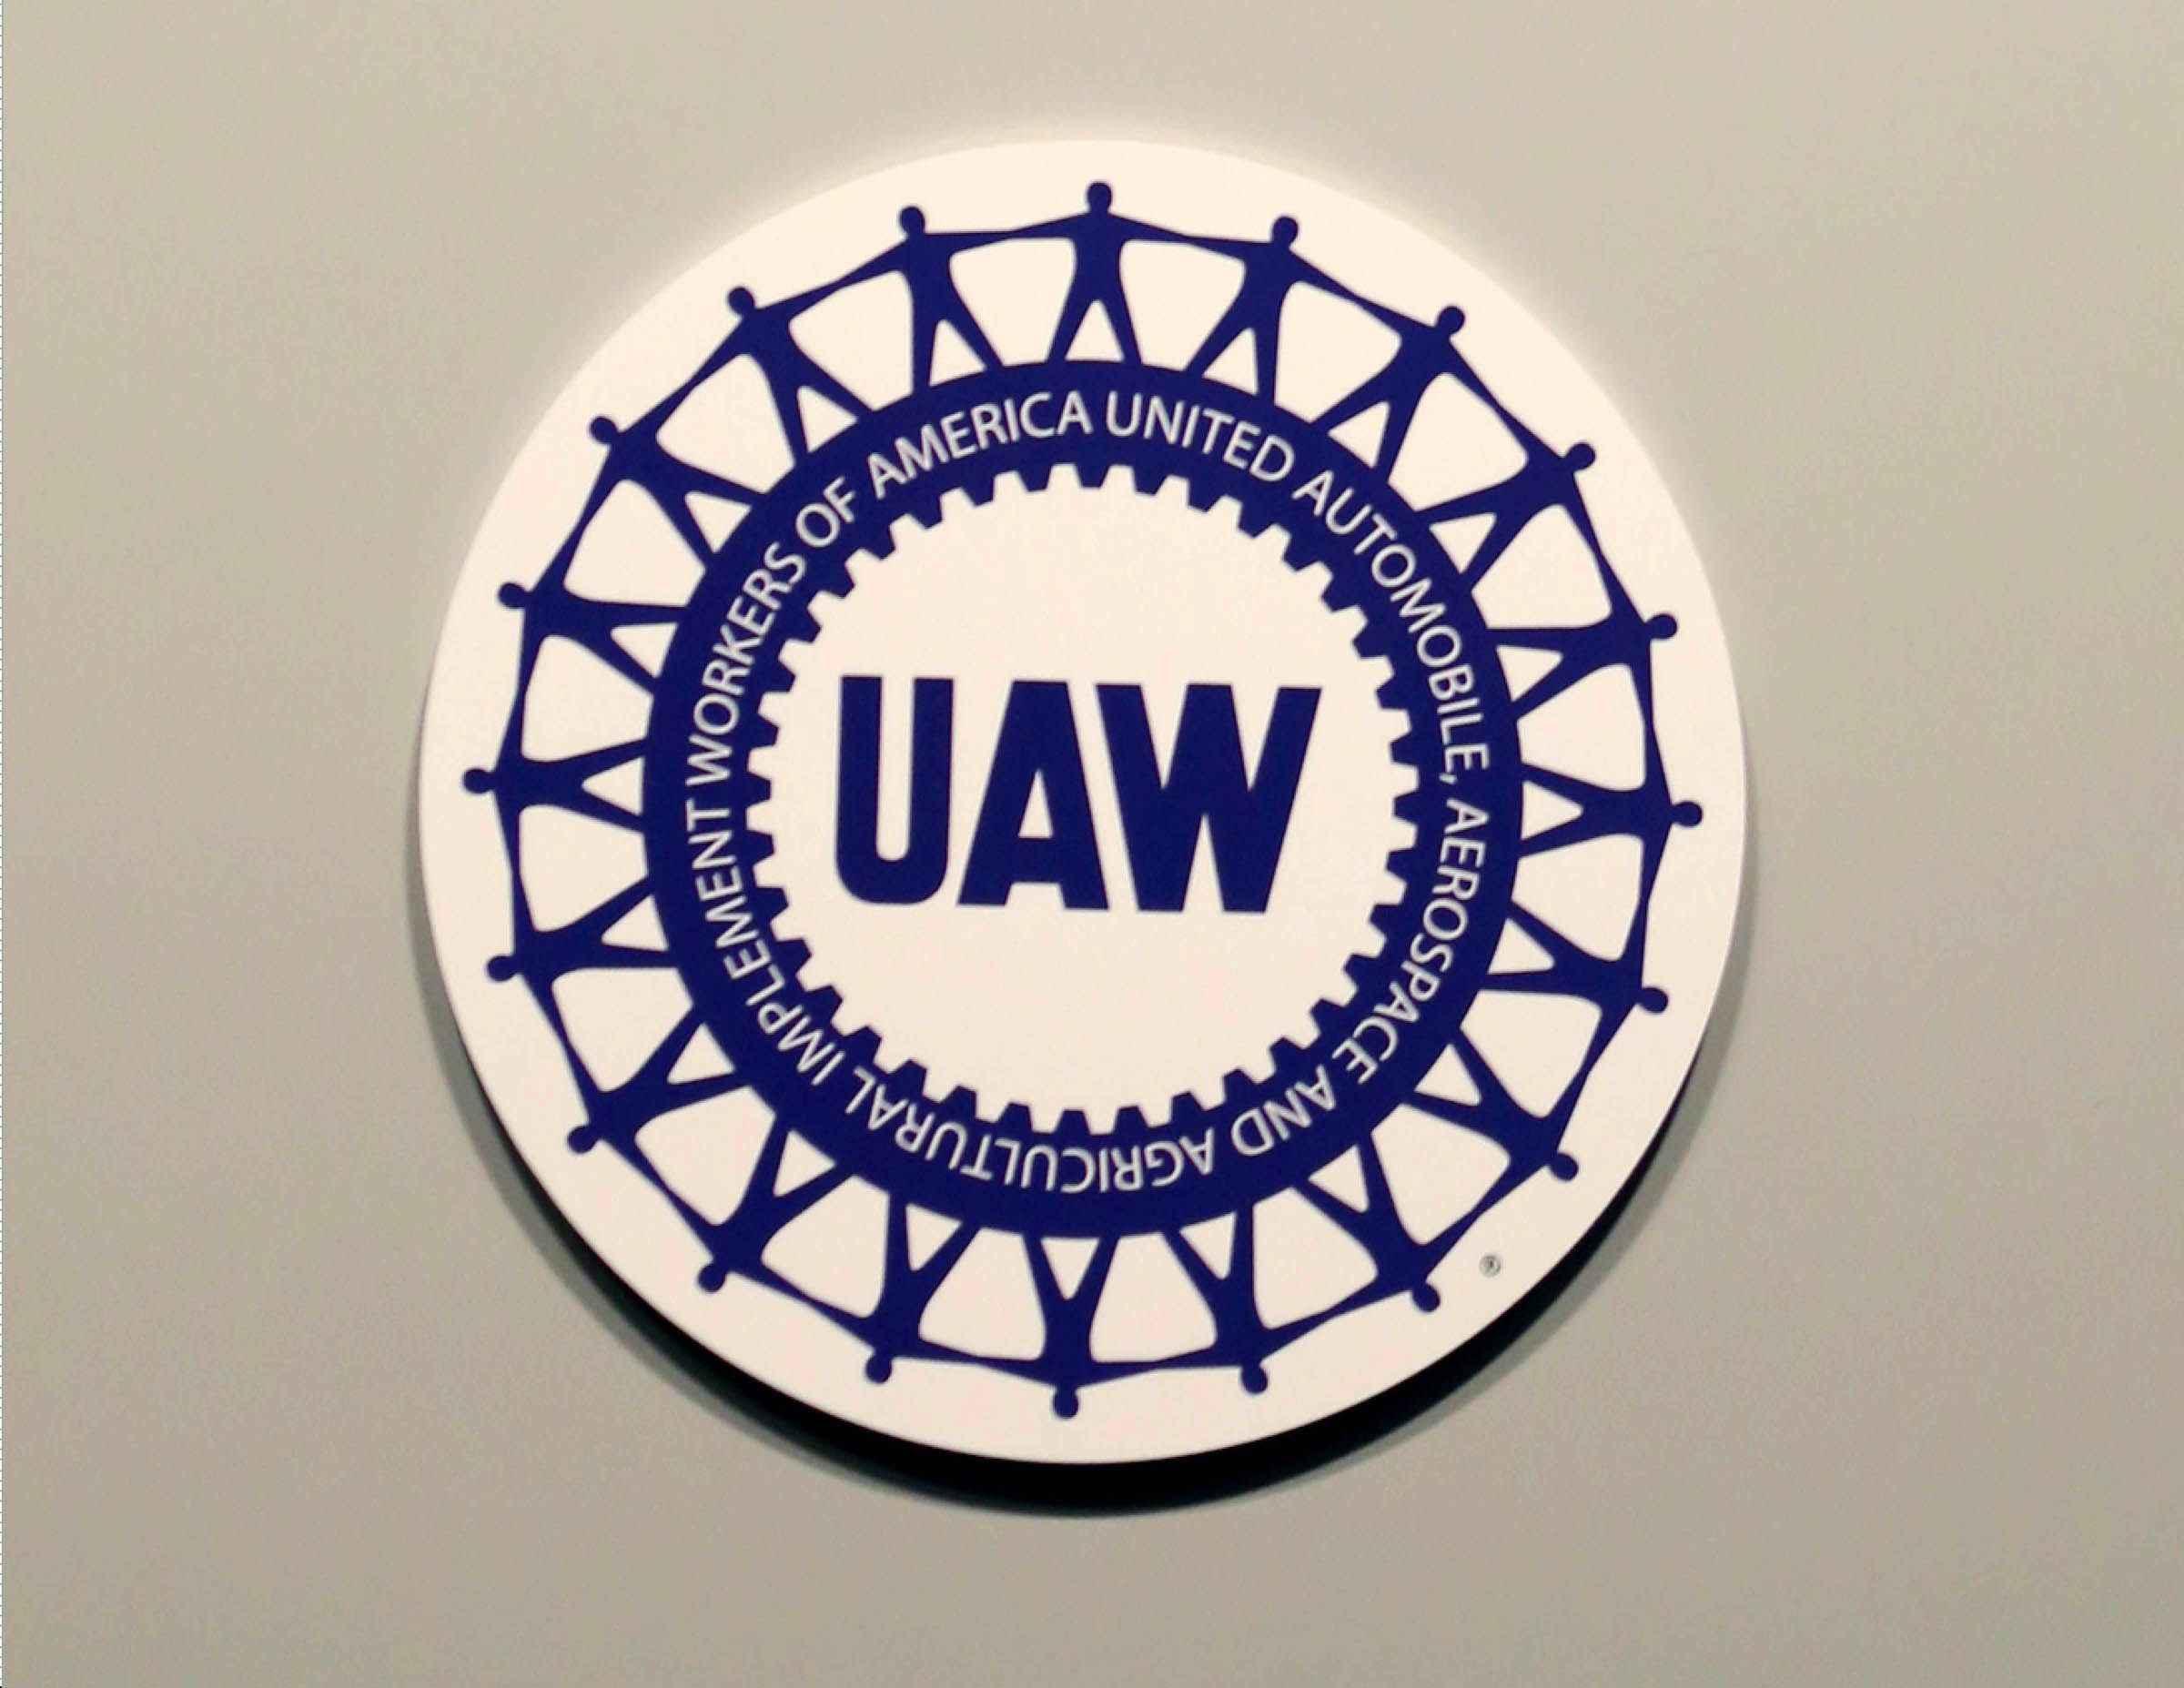 Training center scandal now includes ex-UAW official connected to union's GM department